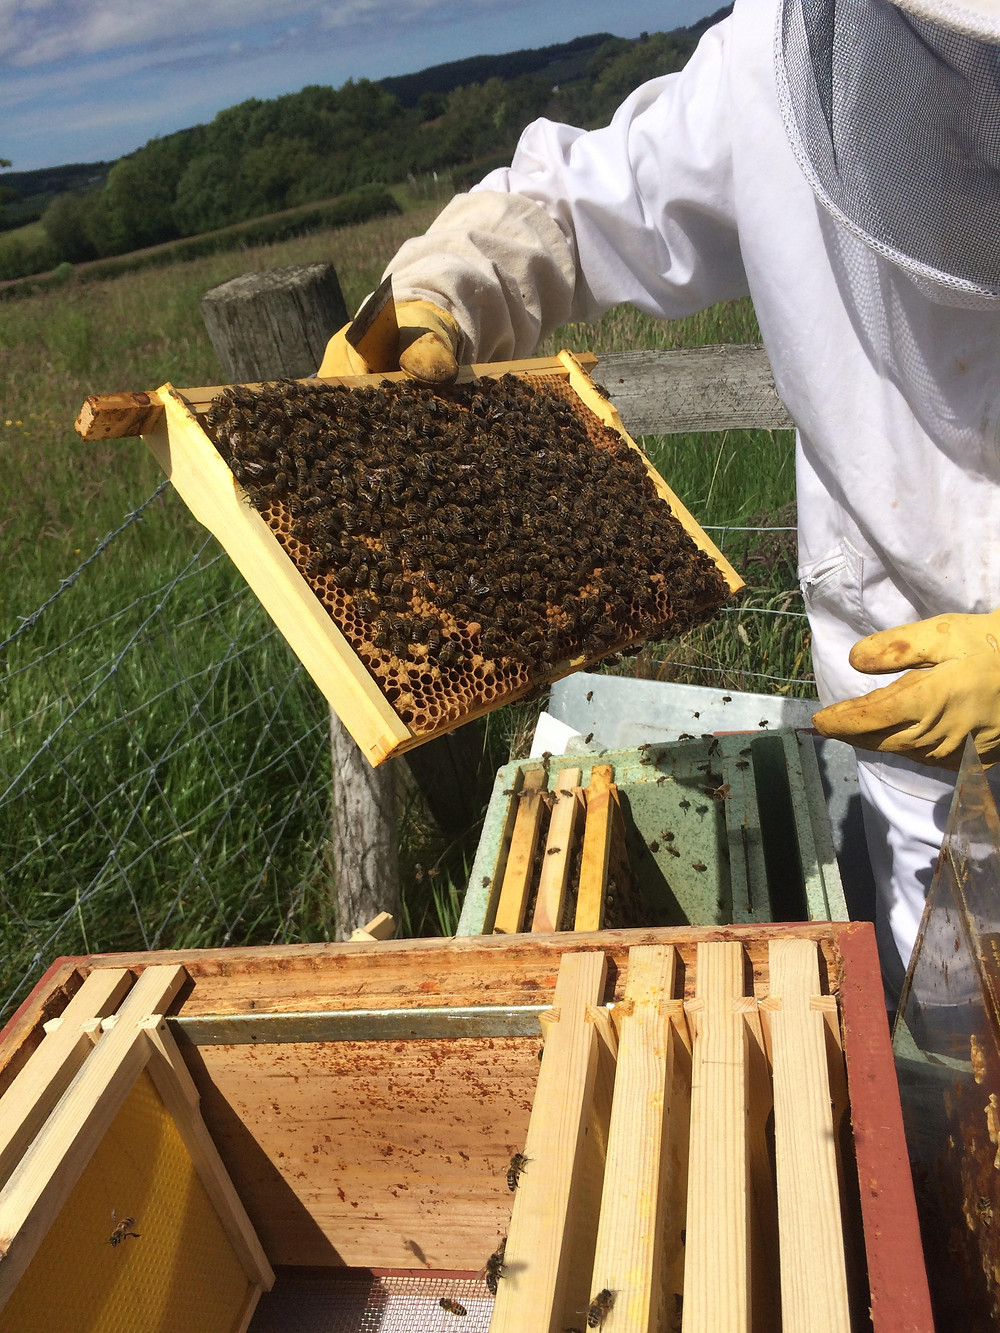 Transferring Bees from Nuc to Hive